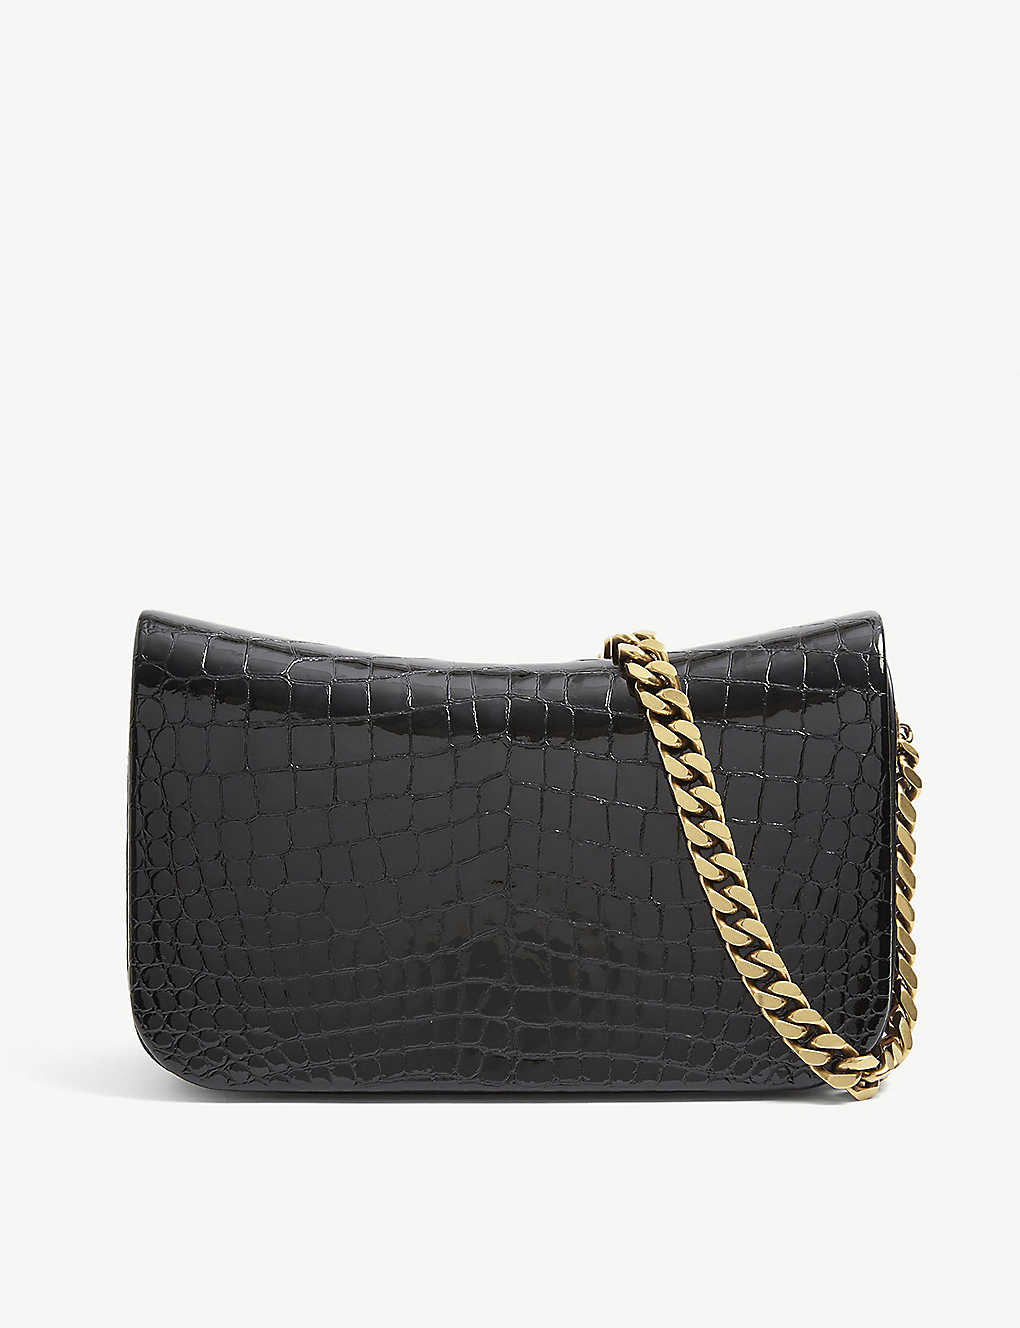 SAINT LAURENT: Elise crocodile-embossed leather shoulder bag